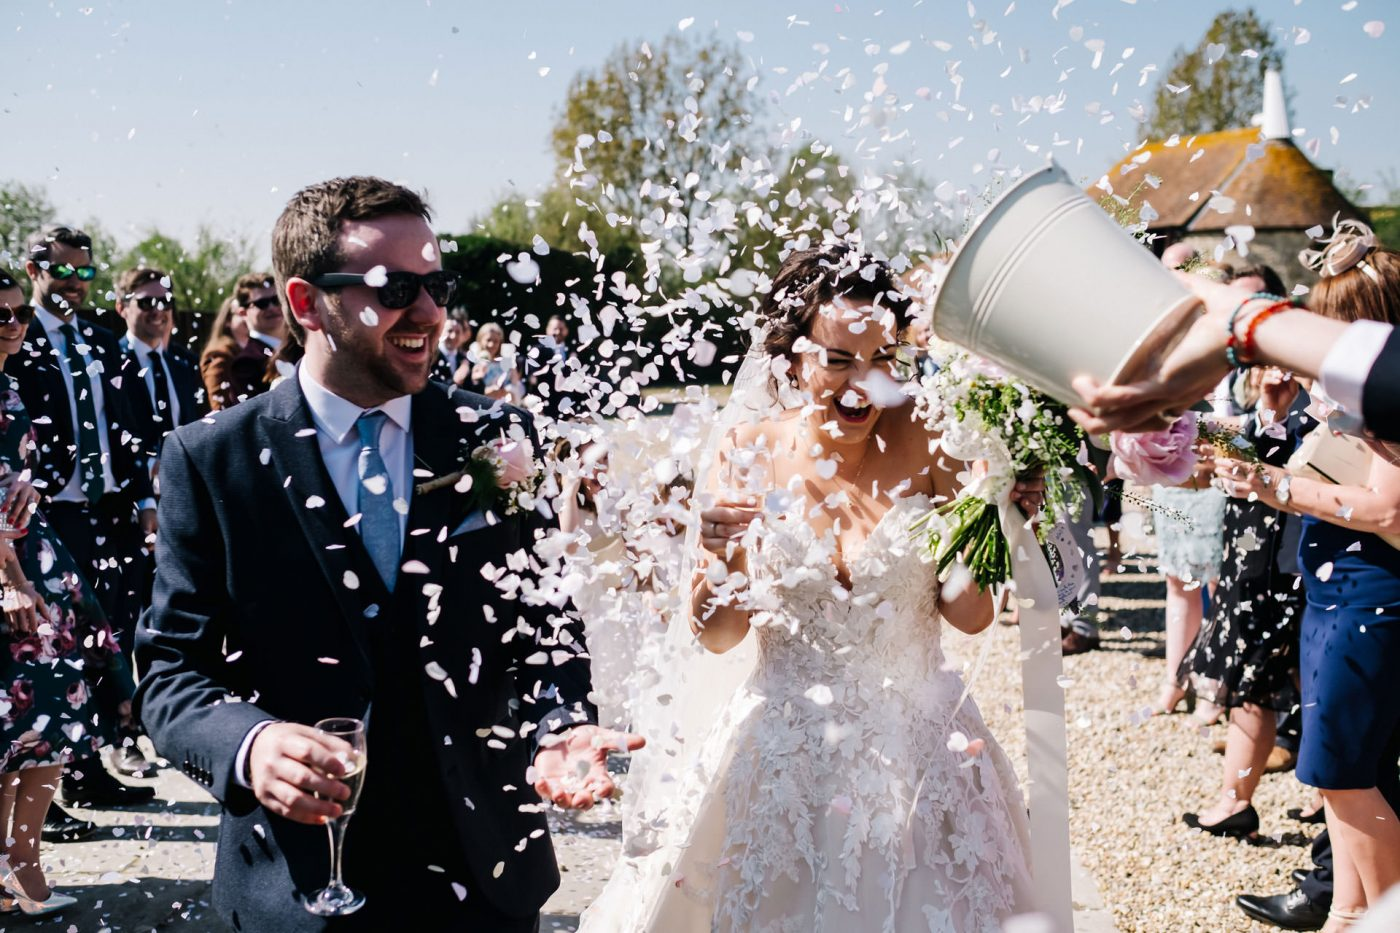 Wedding Photography by Kristian Leven Photography